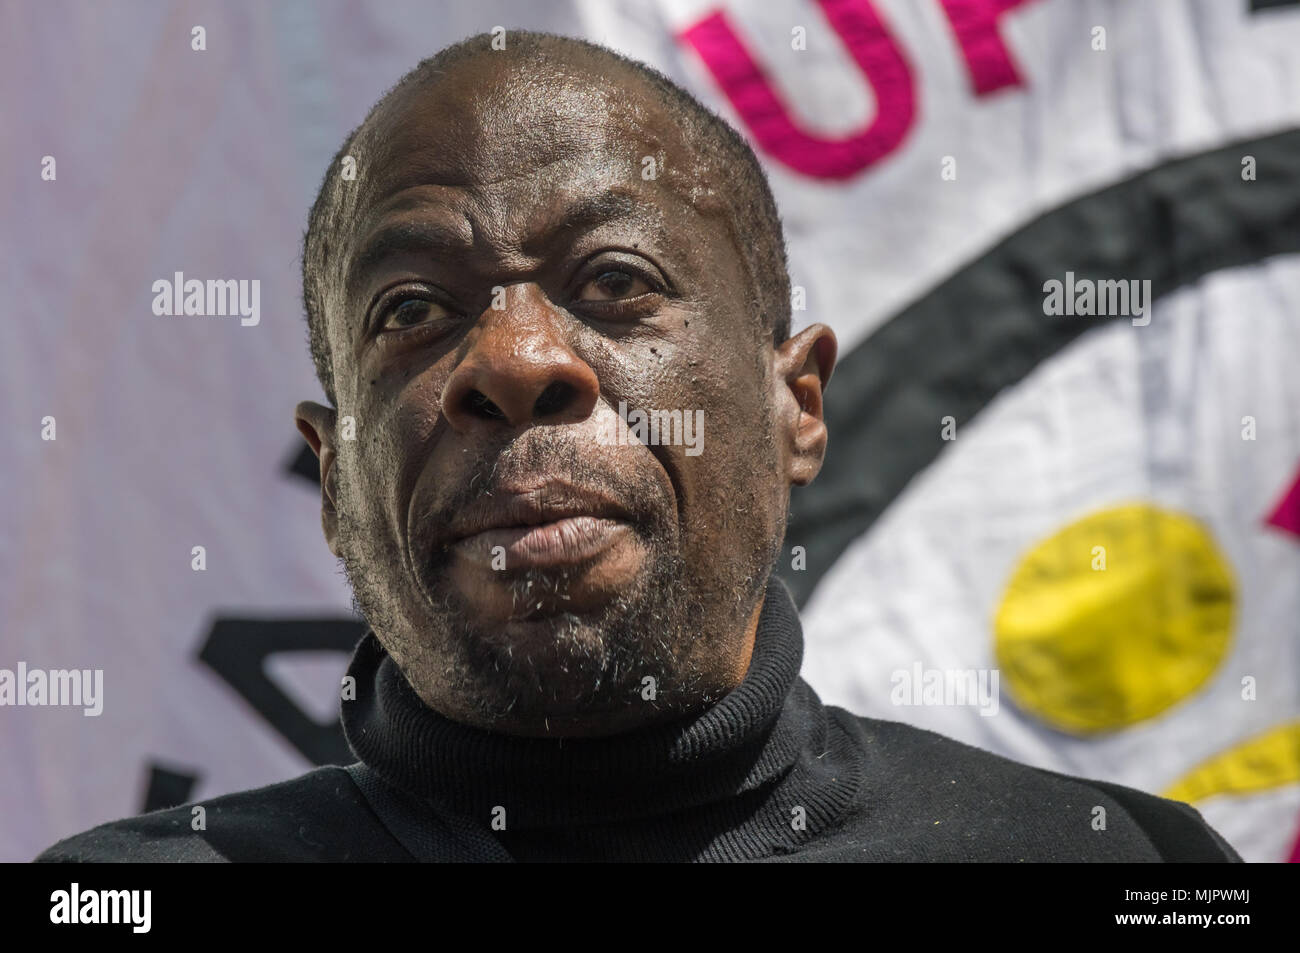 London, UK. 5th May 2018. Weyman Bennett at the Stand Up To Racism rally at Downing St calling for Theresa May's racist 2014 Immigration Act to be repealed and an immediate end to the deportation and detention of Commonwealth citizens, with those already deported to be bought back to the UK. The protesters called for protection to the guaranteed for all Commonwealth citizens and for those affected to be compensated for deportation, threats of deportation, detention, loss of housing, jobs, benefits and denial of NHS treatment. There should be an end to the 'hostile environment' for all immigran - Stock Image